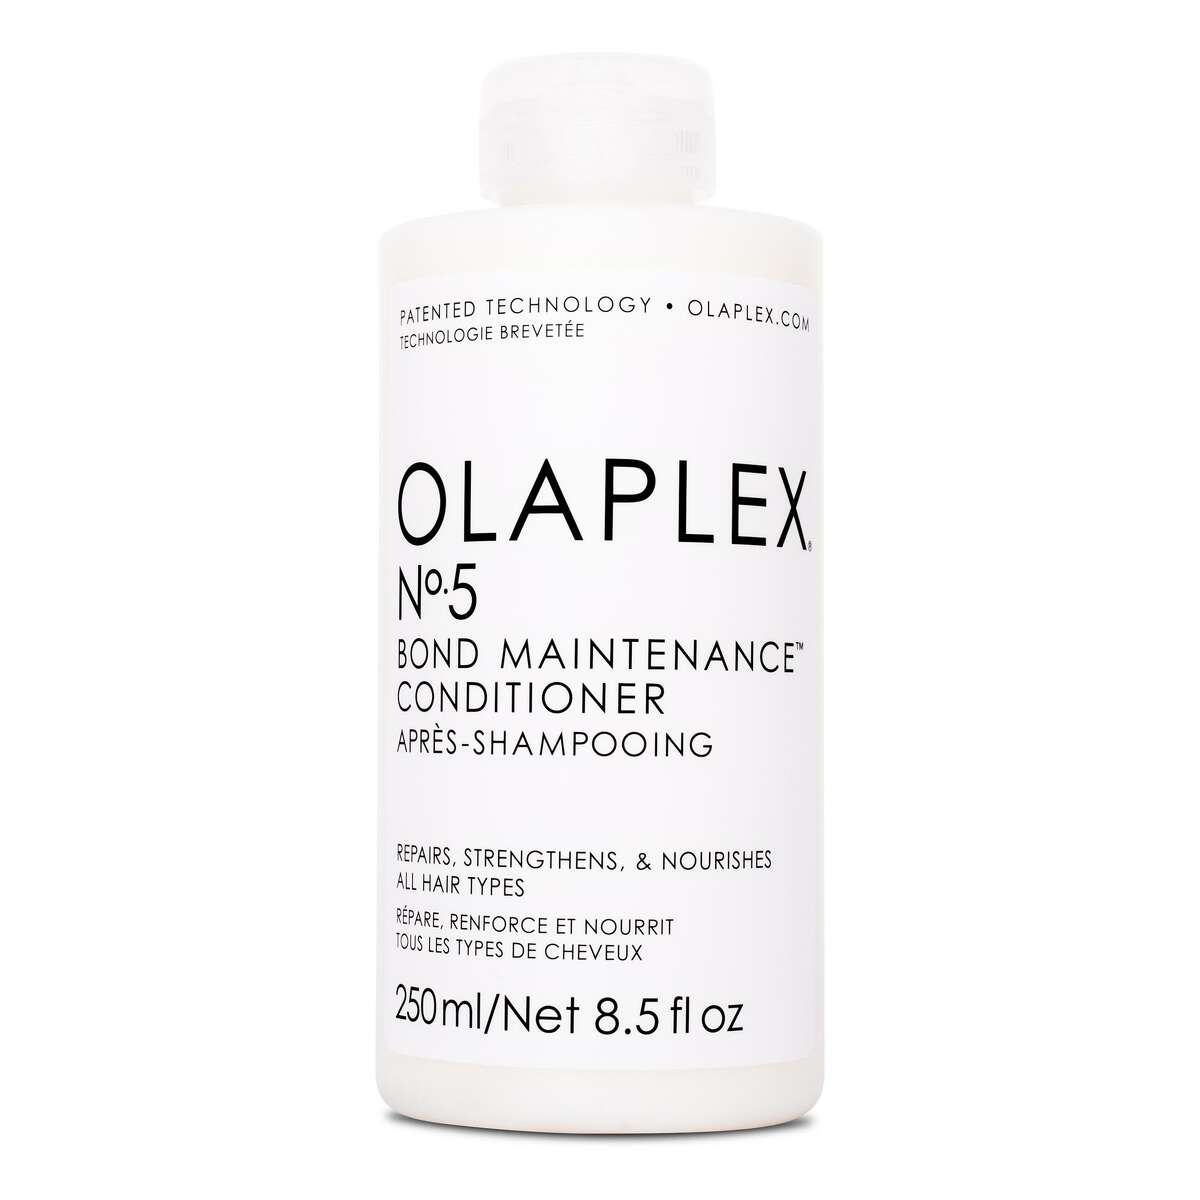 Olaplex No. 5 Bond Maintenance Conditioner is one of Sephora's leading hair-care products.